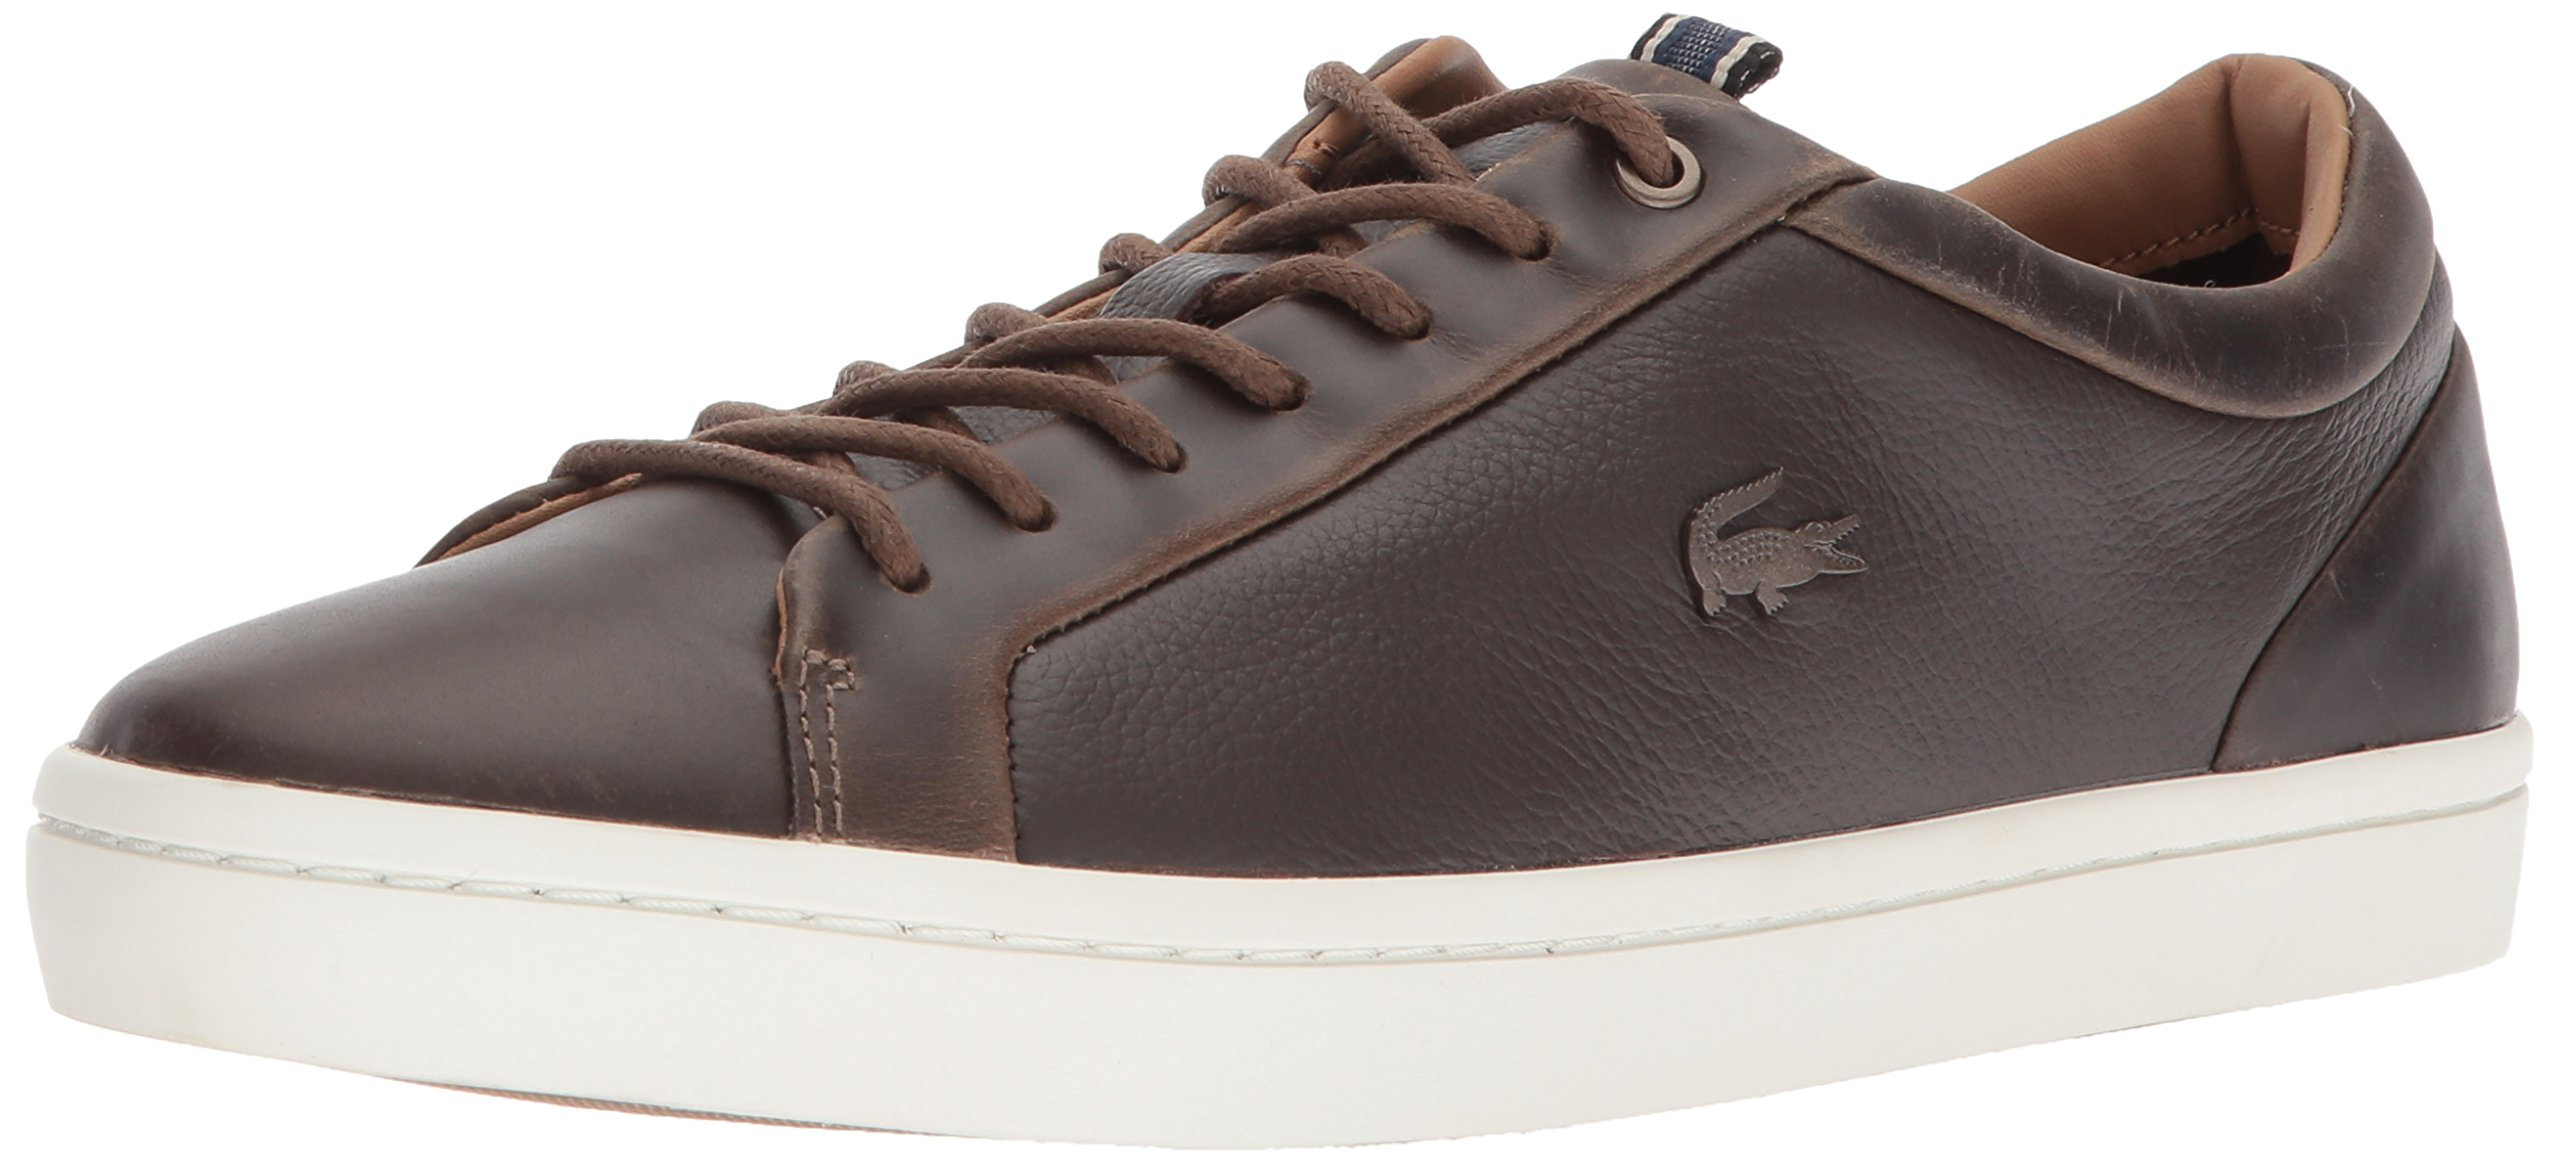 Lacoste Men's Straightset Sneakers,BRW/Off White Leather,7 M US